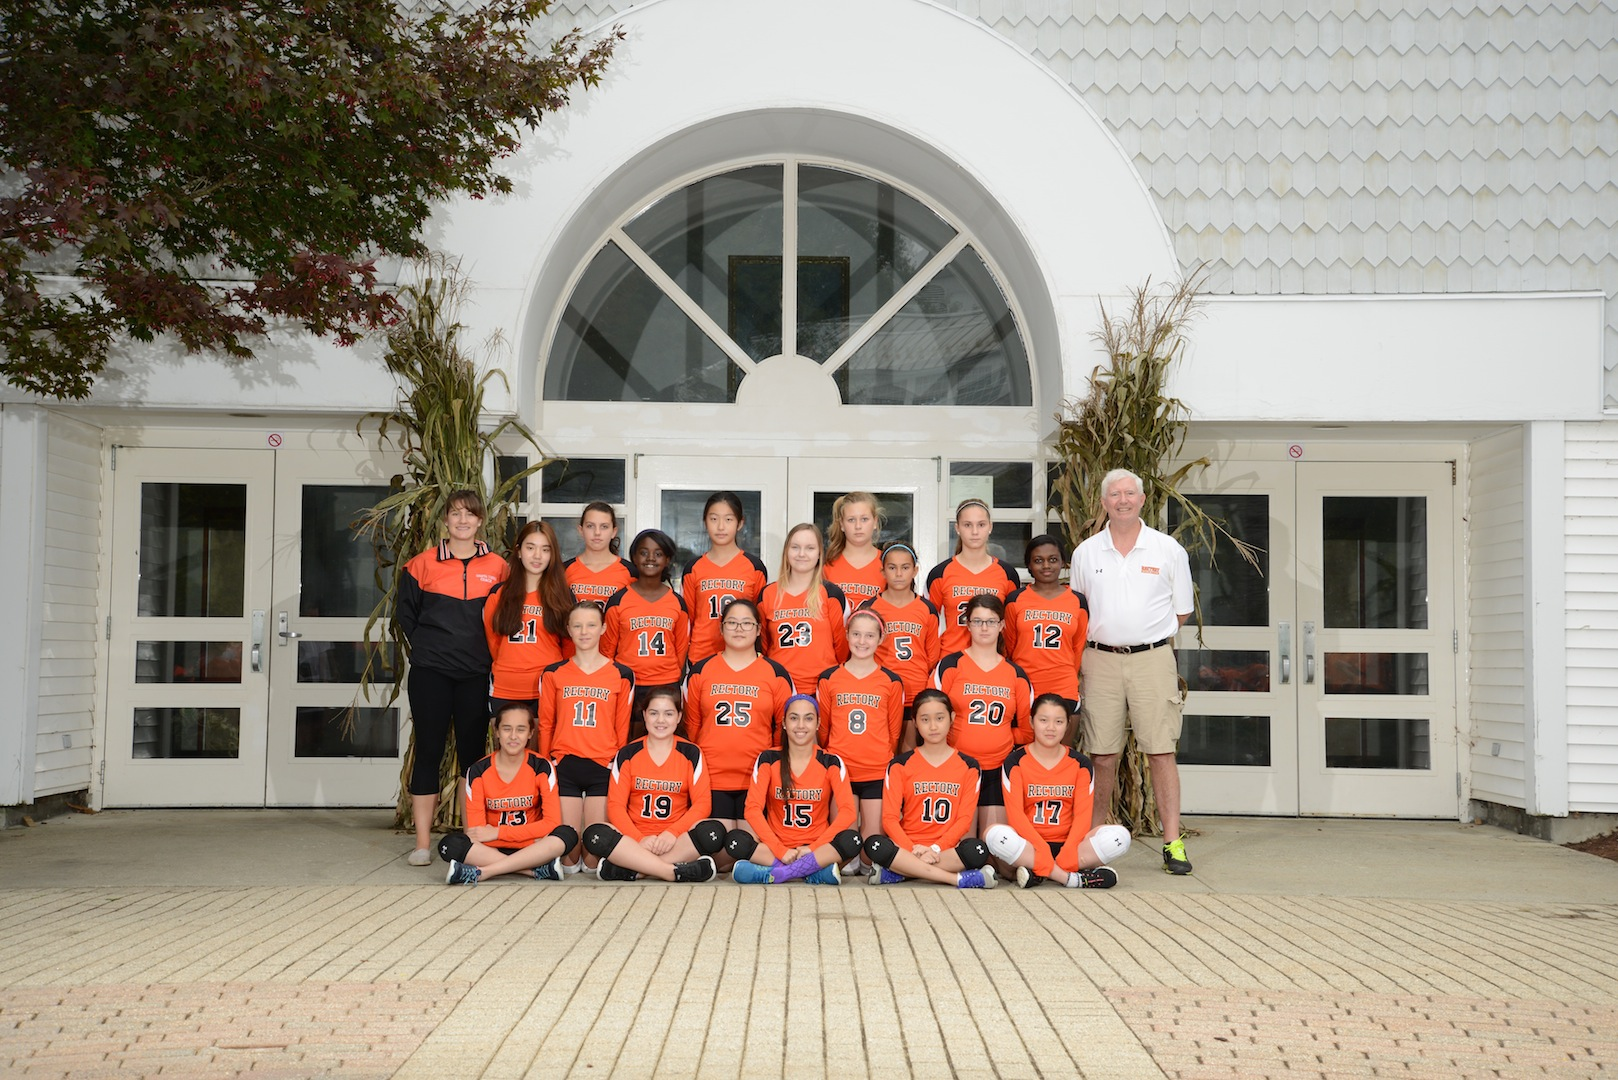 Rectory's first Girls' Volleyball Team from the fall, 2015, with coaches D'Angelo and Healy.